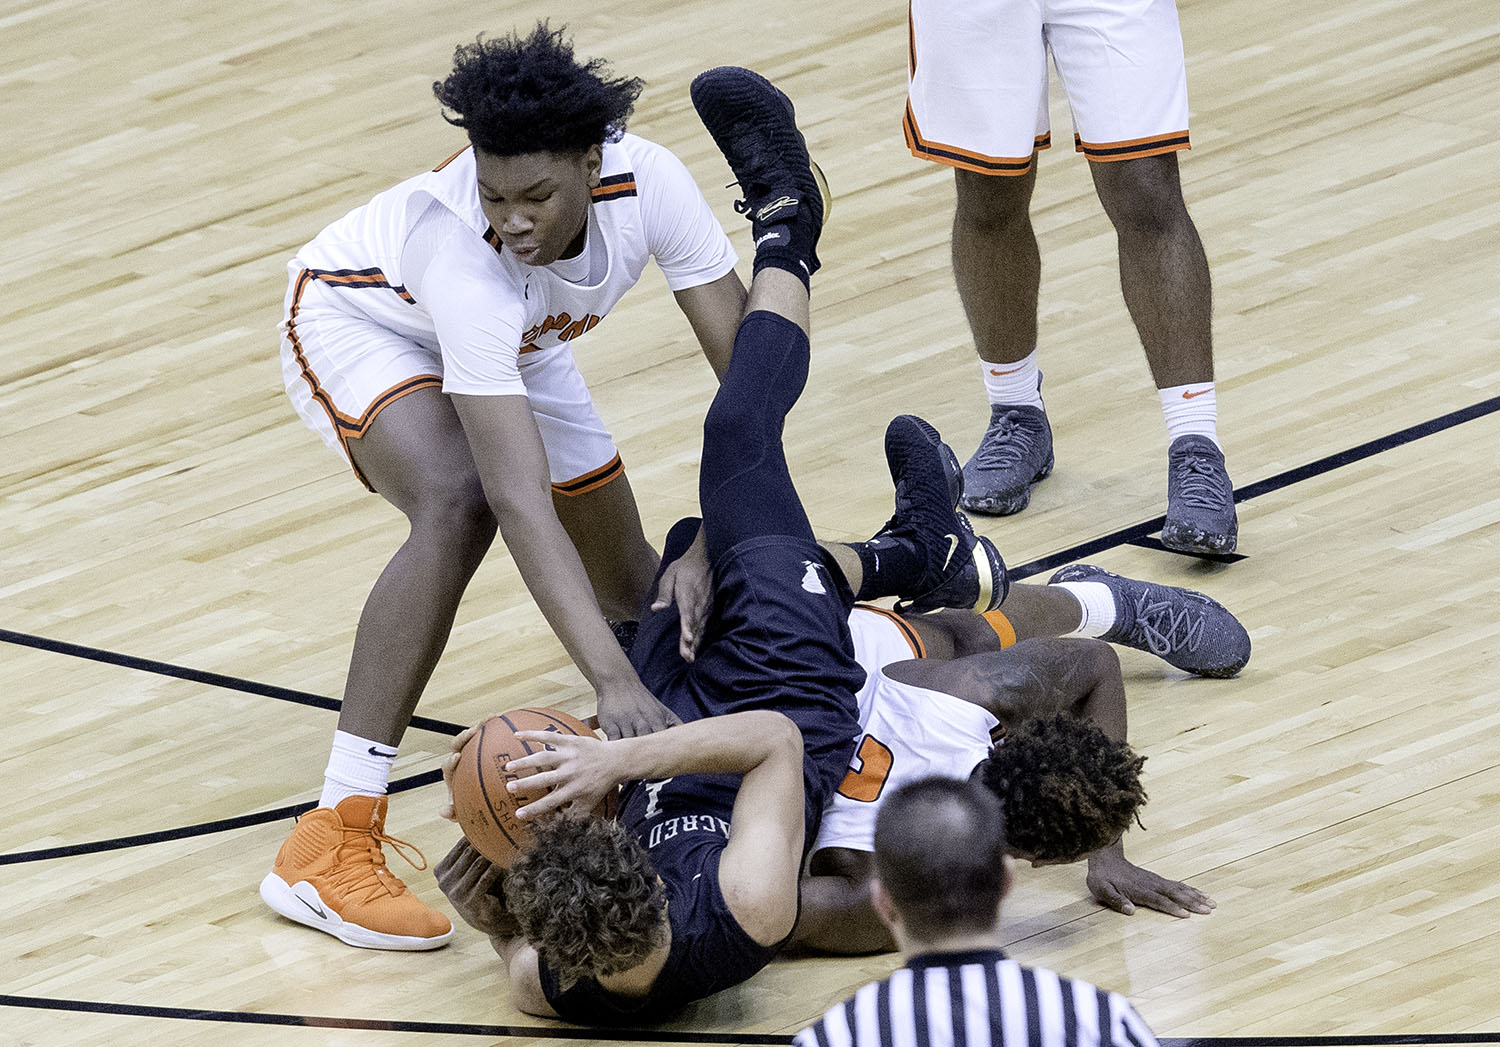 Sacred Heart-Griffin's Isaiah Thompson corrals a loose ball against Lanphier during the Boys City Tournament at the Bank of Springfield Center Thursday, Jan. 17, 2019.  [Ted Schurter/The State Journal-Register]